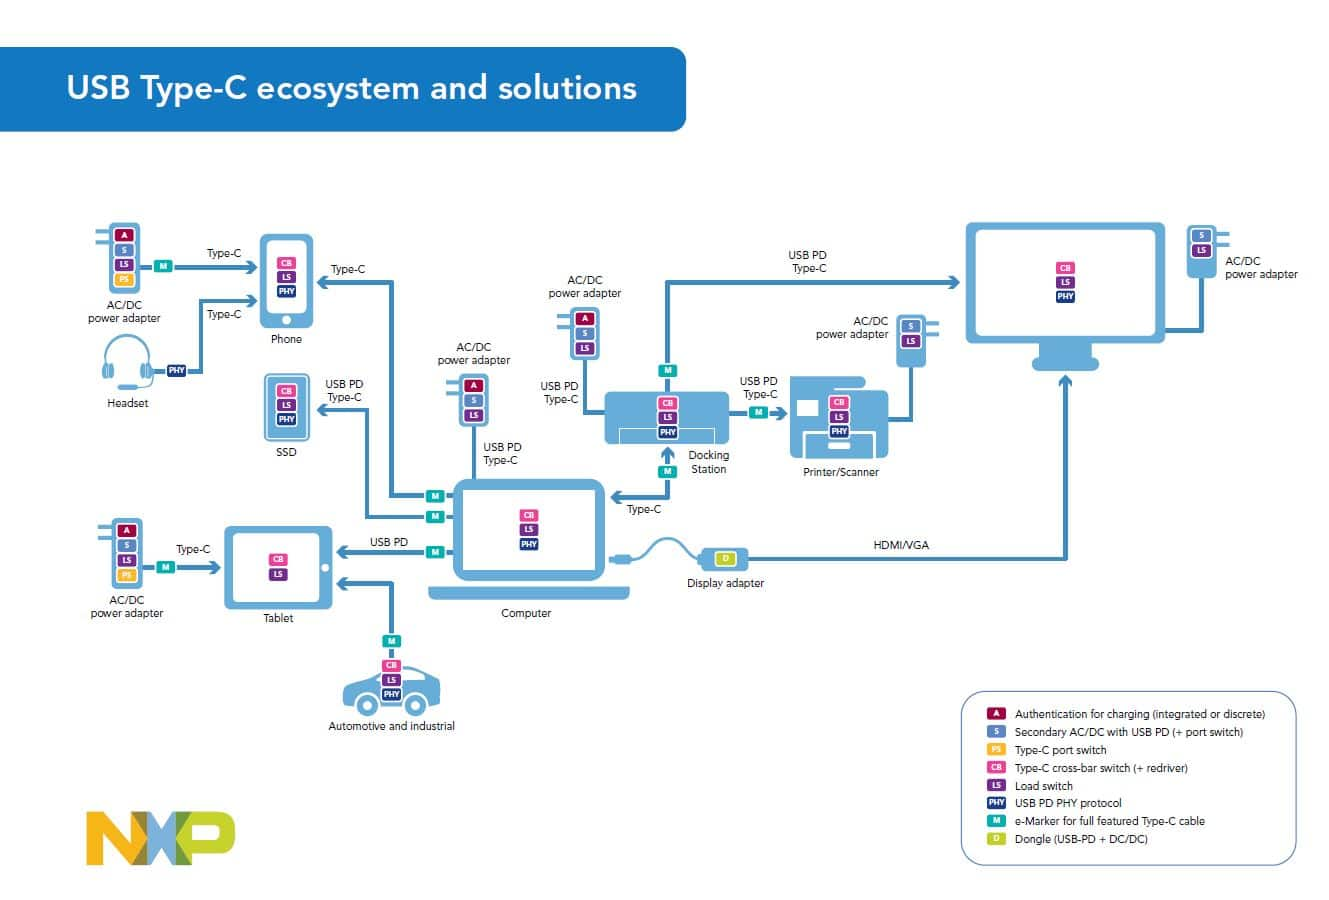 hight resolution of image of usb type c ecosystem and solutions